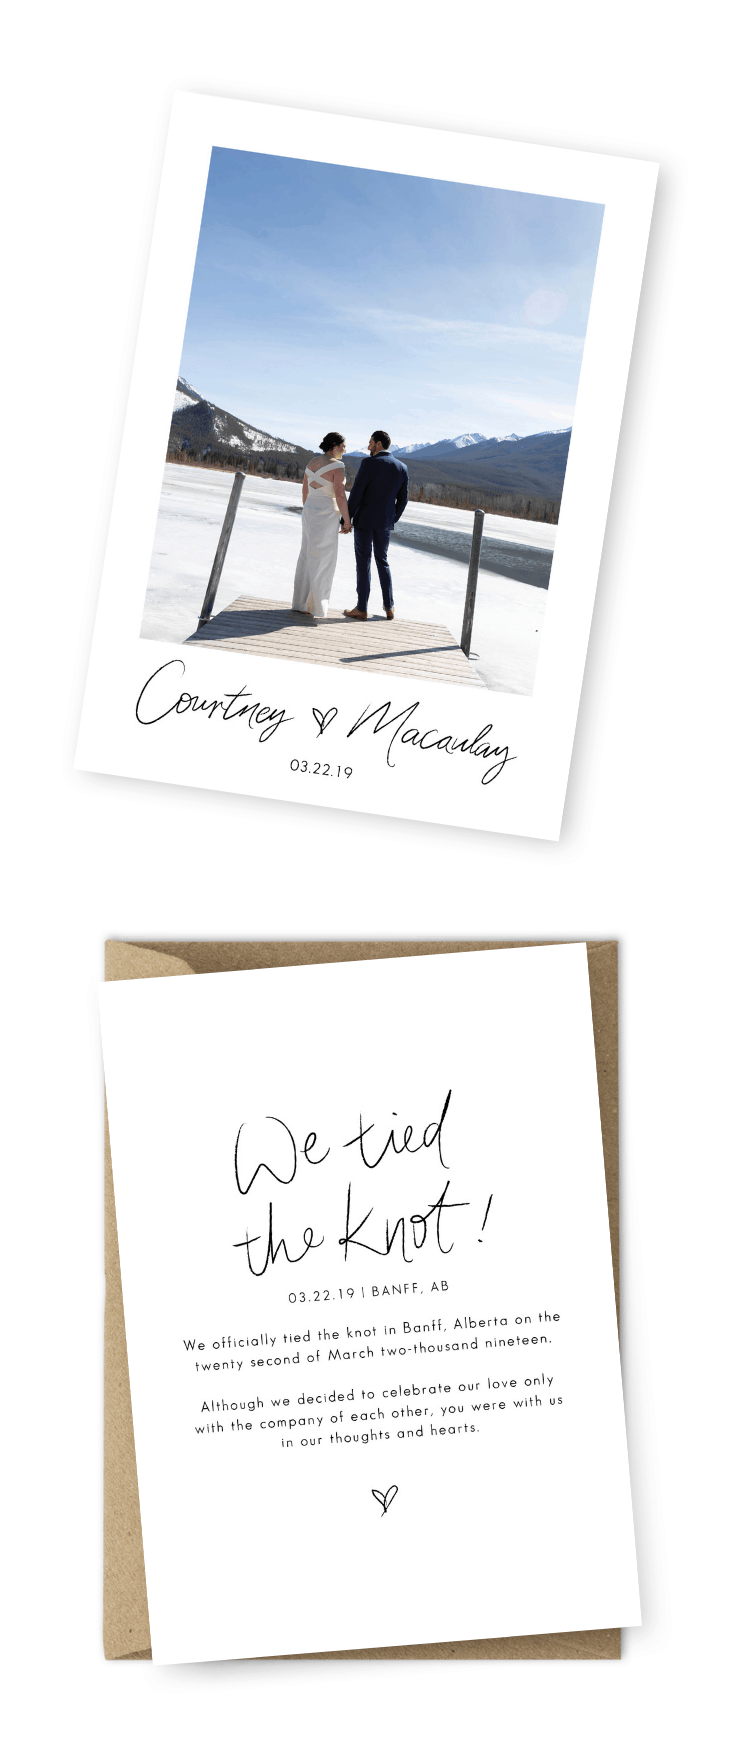 Elopement Announcement Examples Elopement Cards Wedding Announcements Photo Flow Photography For the Love of Stationery